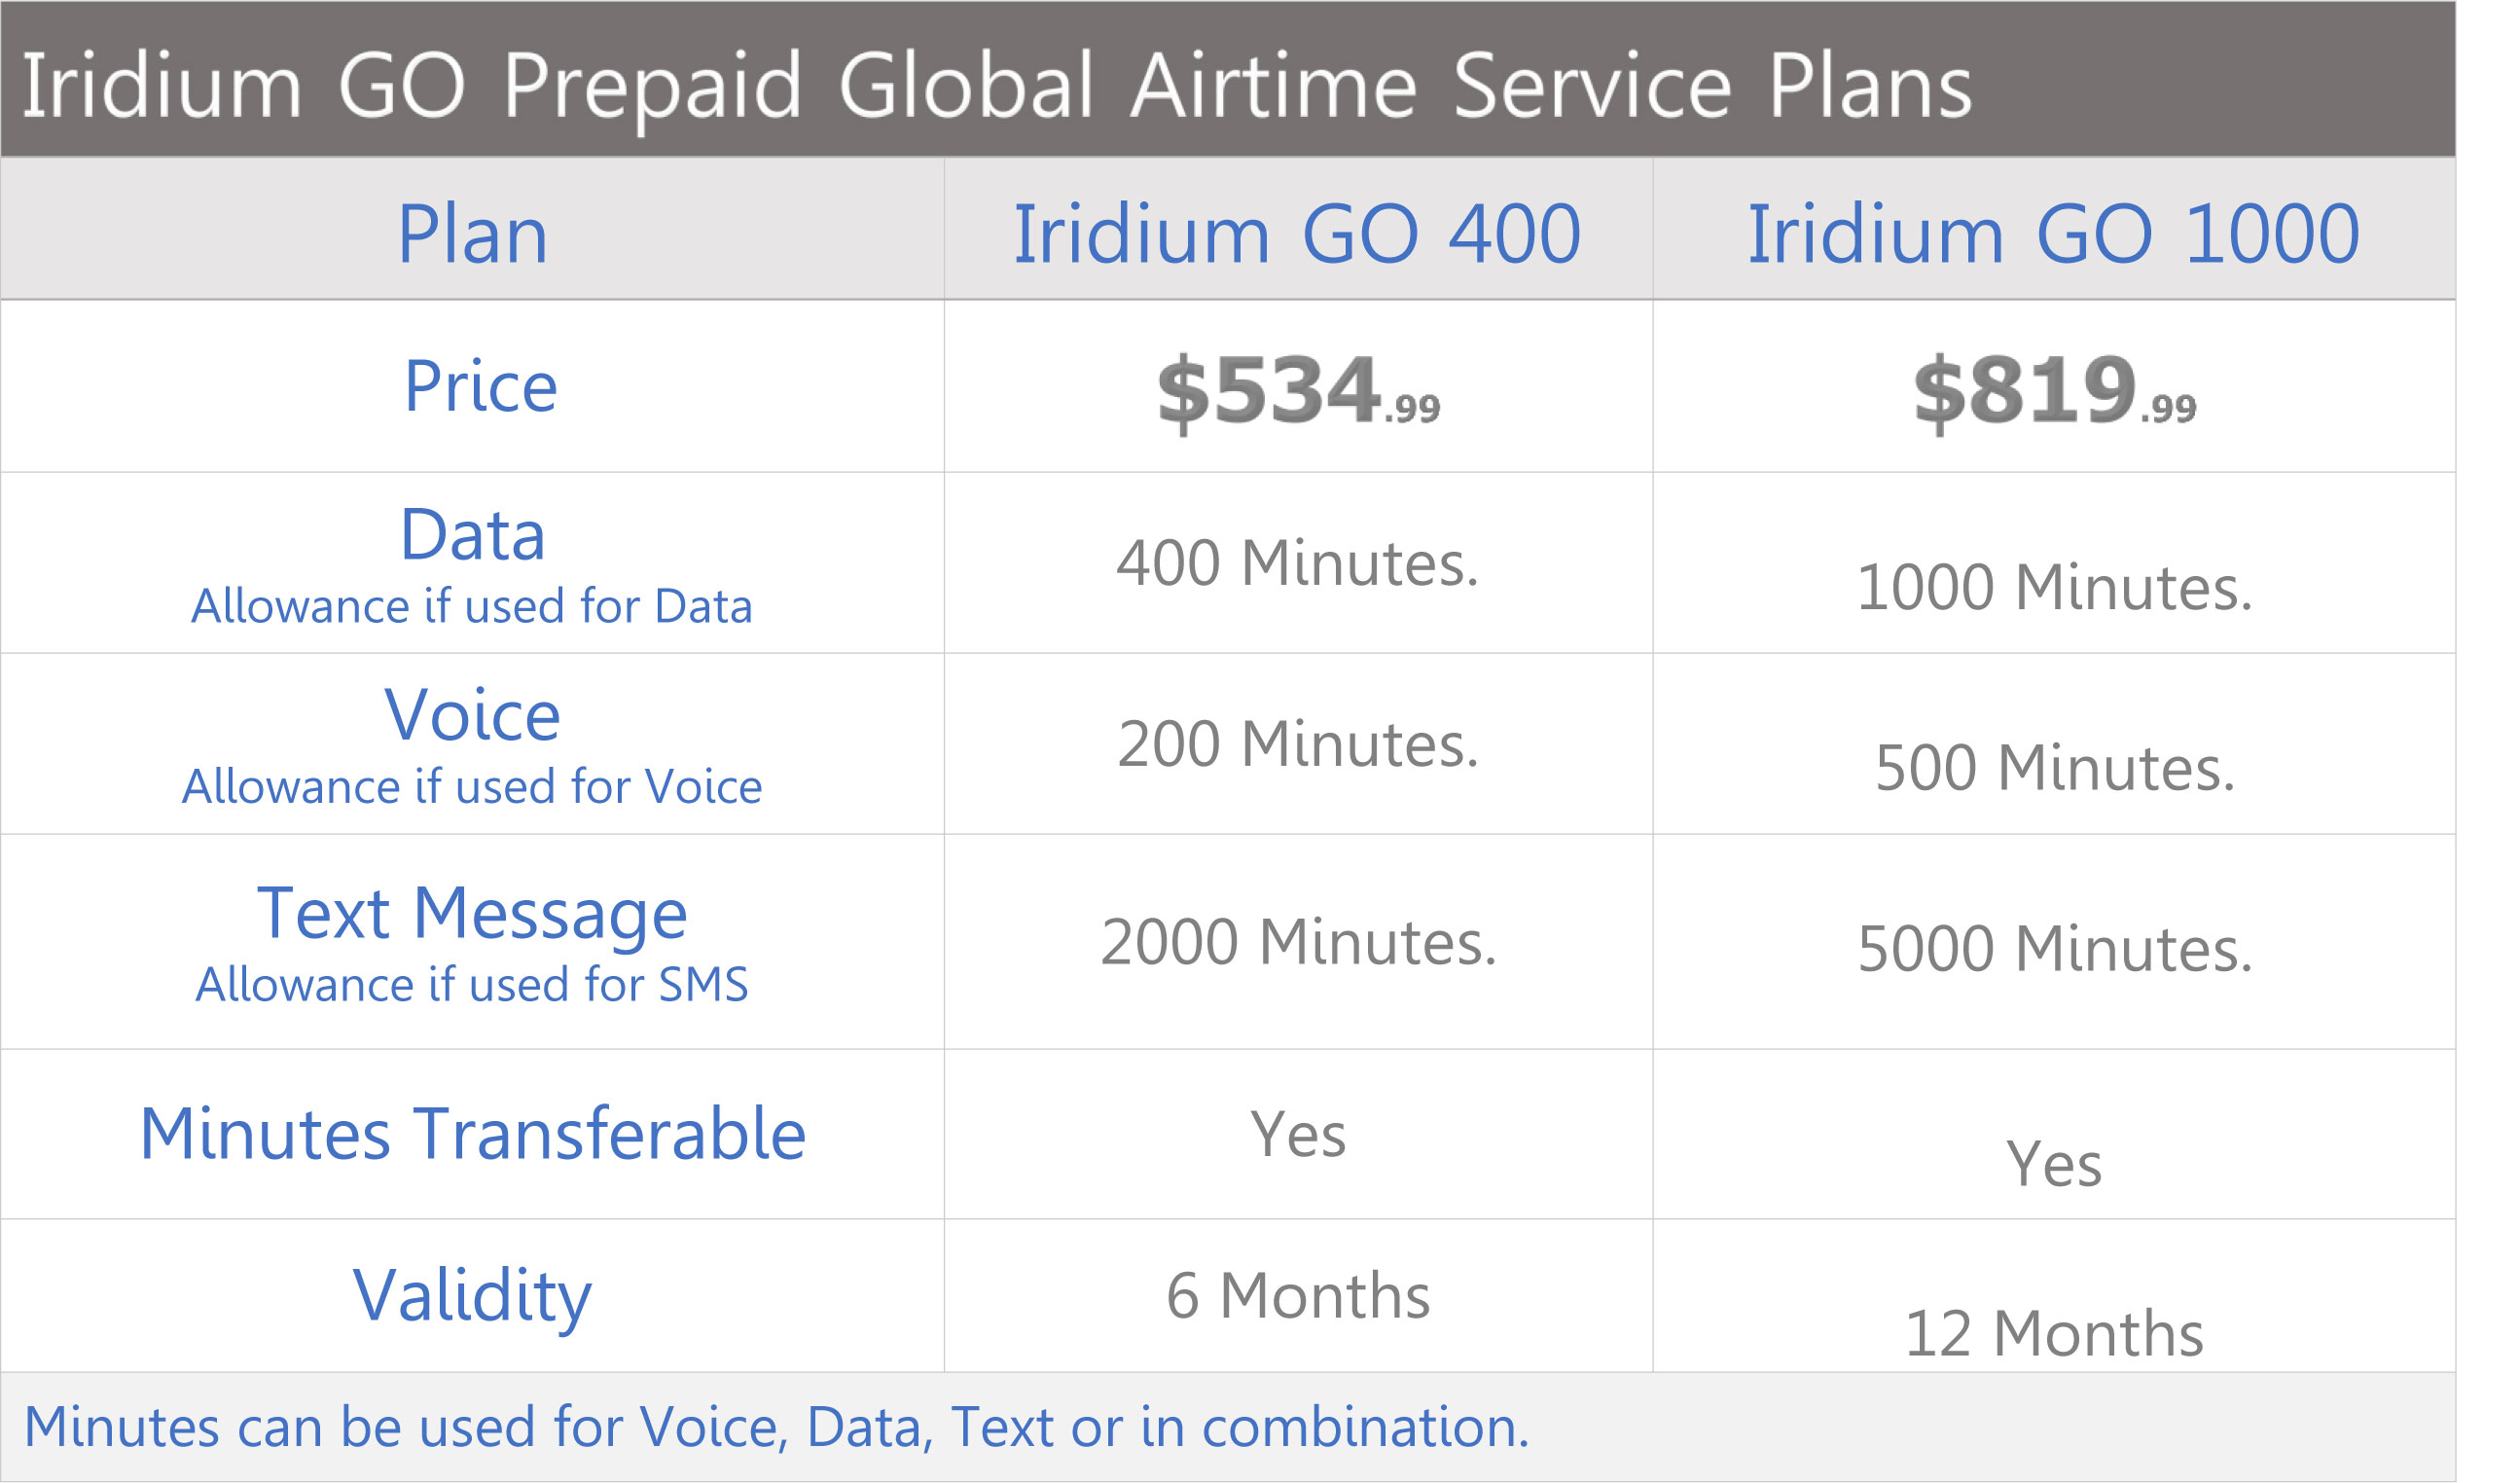 iridium-go-prepaid-global-airtime-plans-price-chart-2018-northernaxcess-rev.jpg